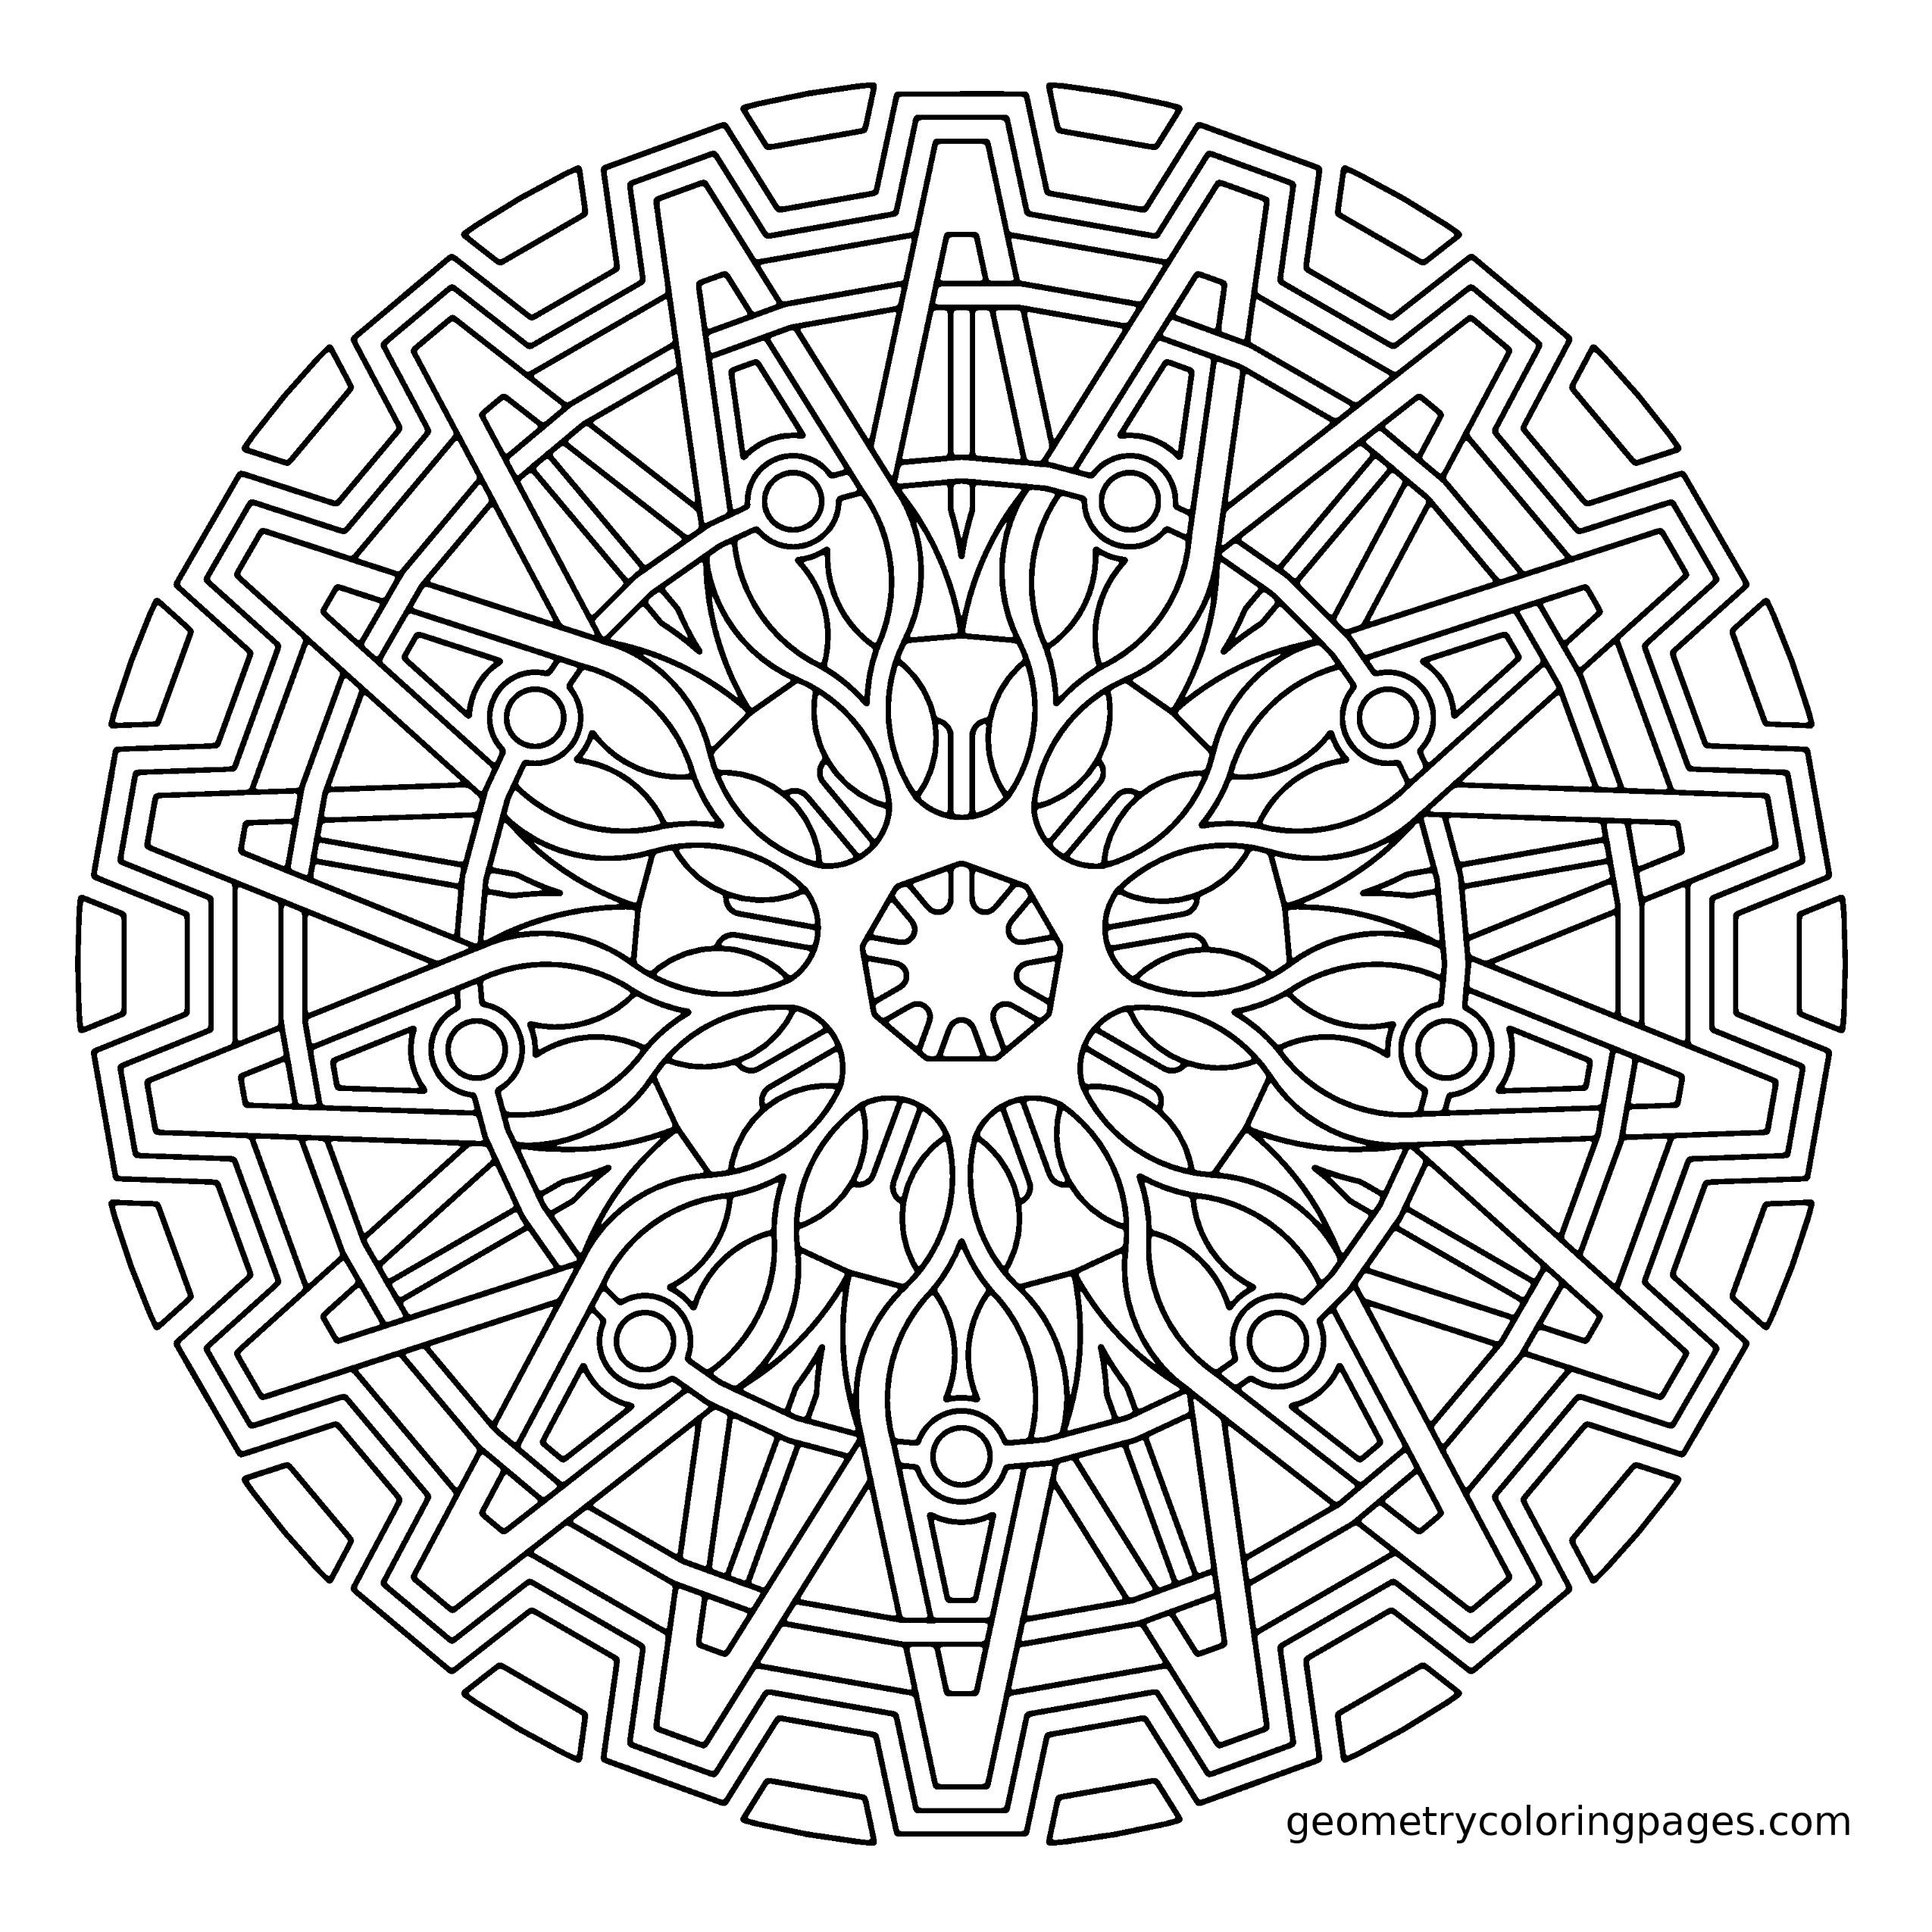 2550x2550 Meditation Coloring Pages Meditation Coloring Pages